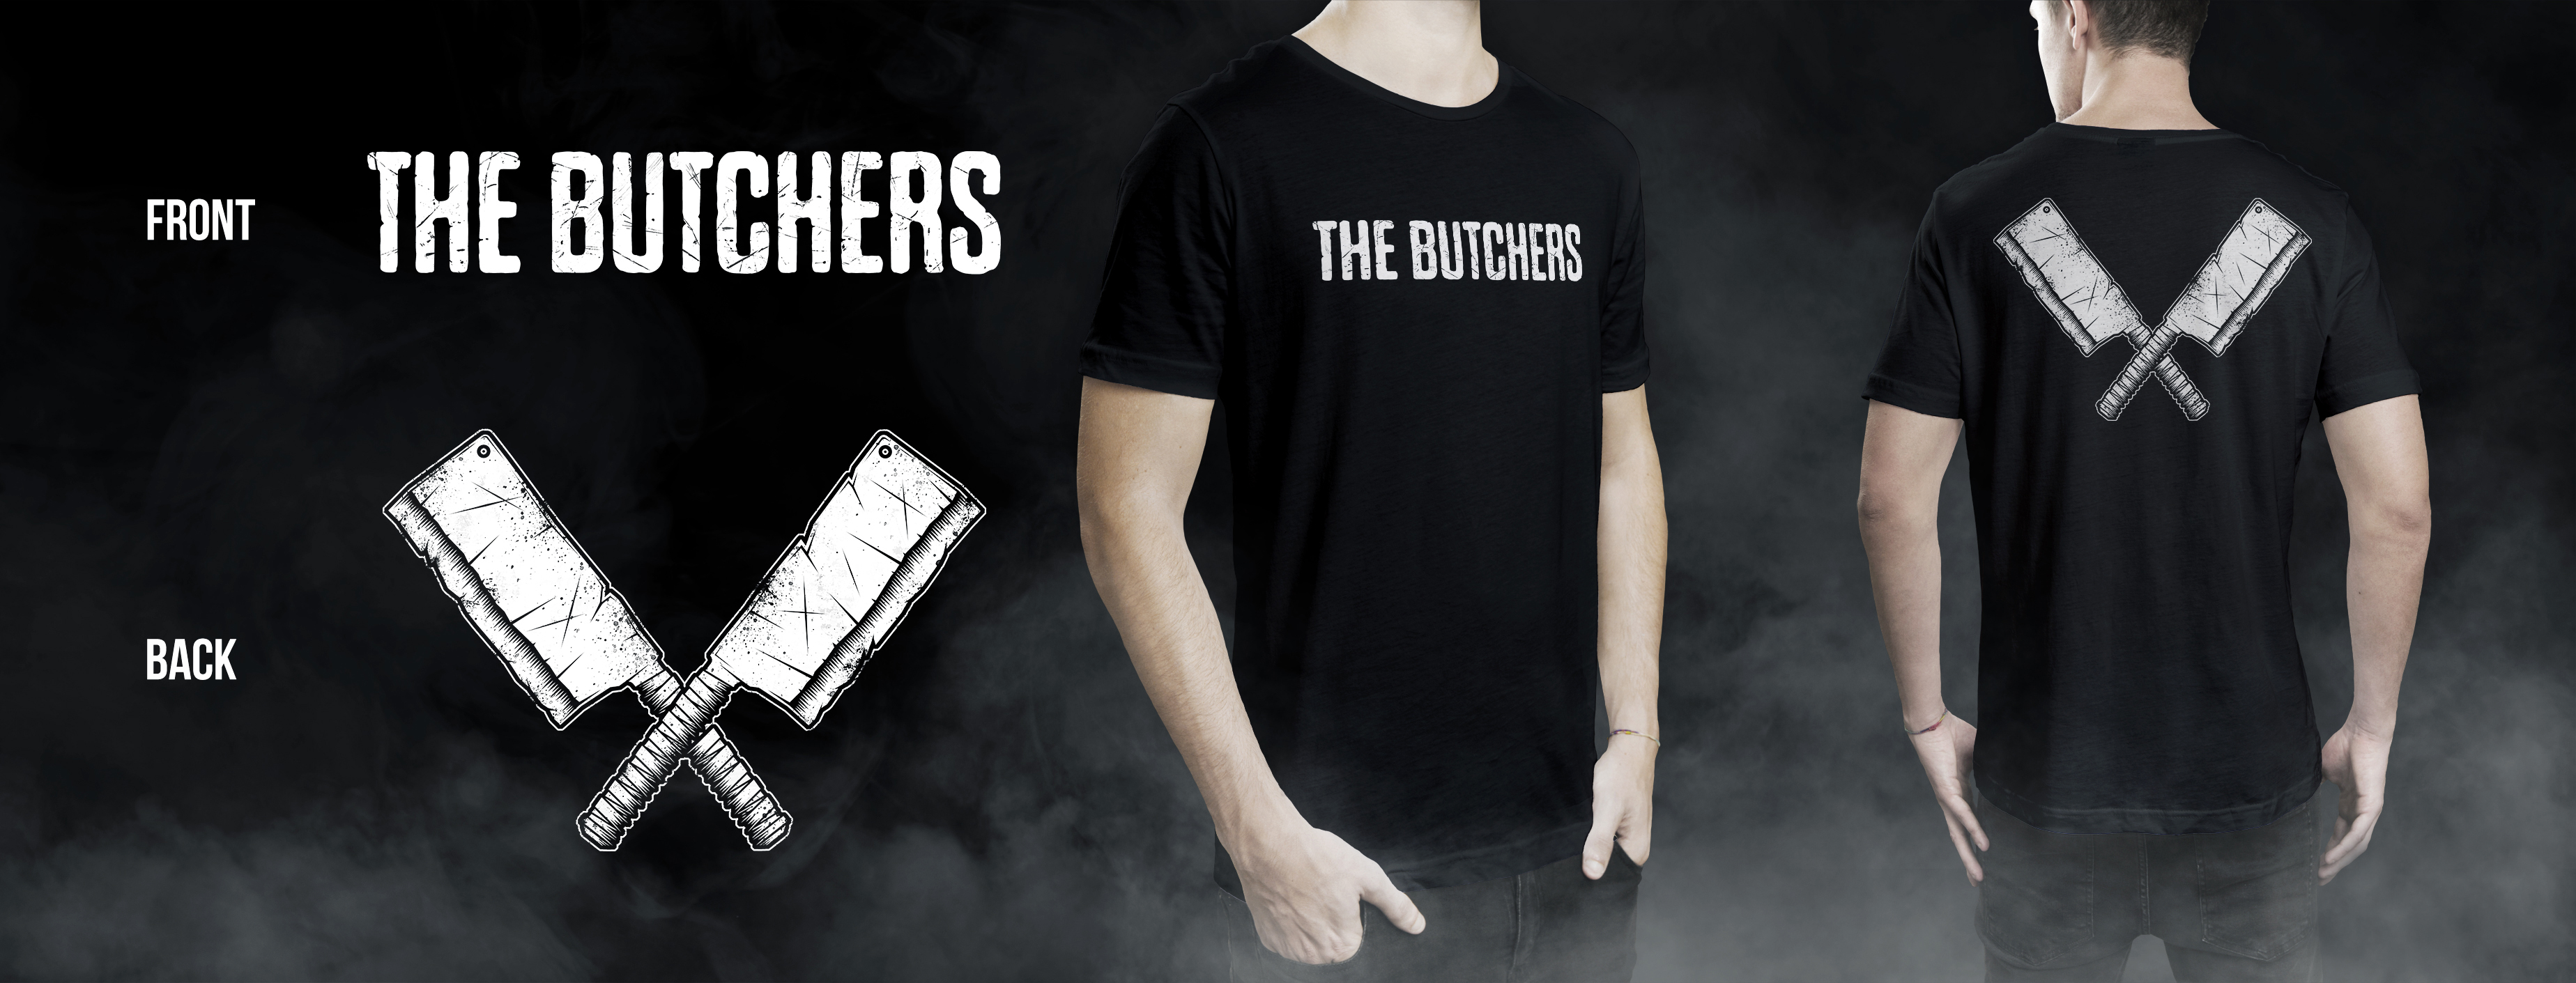 The Butchers triko